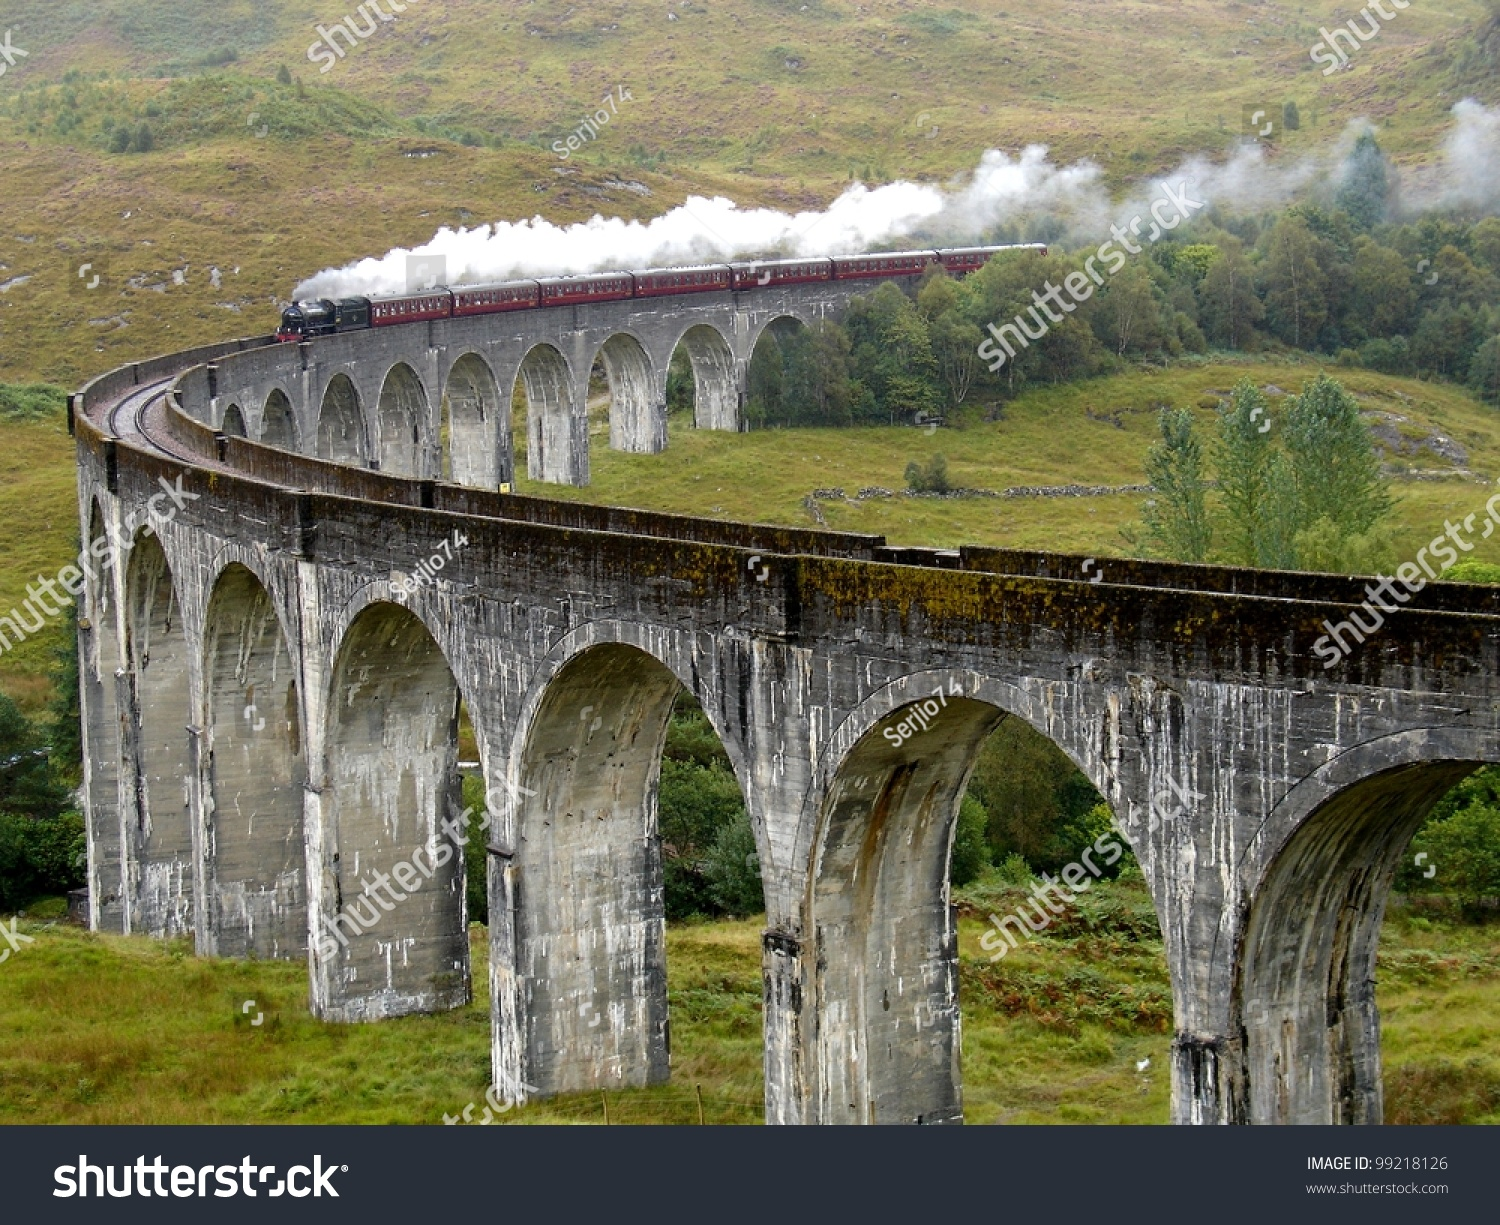 Glenfinnan United Kingdom  City new picture : Steam Train On Glenfinnan Viaduct. Scotland. United Kingdom. Photo ...